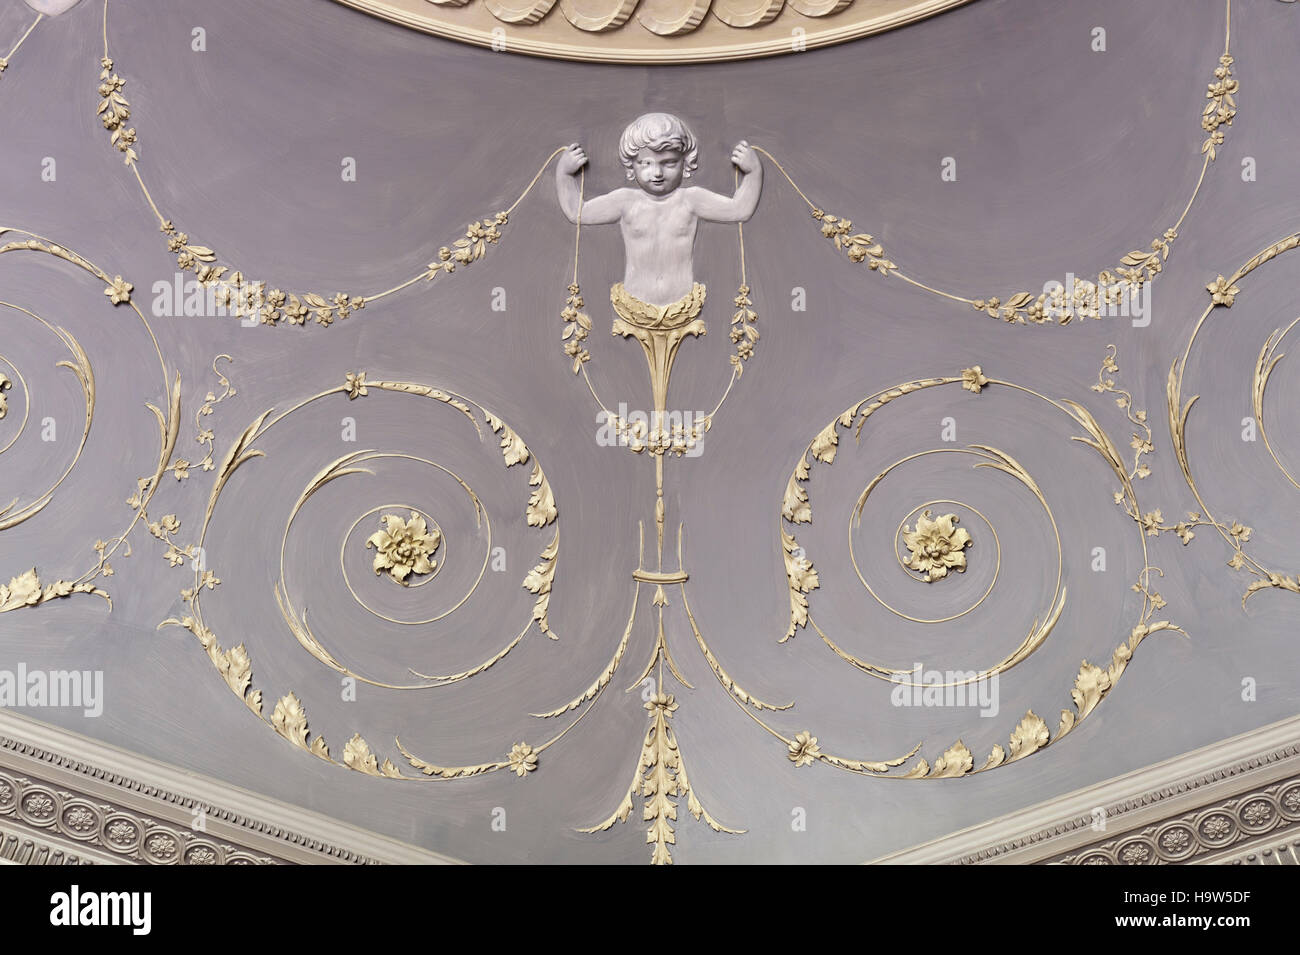 Detail of the plasterwork ceiling in The Octagon at Attingham Park, Shropshire. - Stock Image